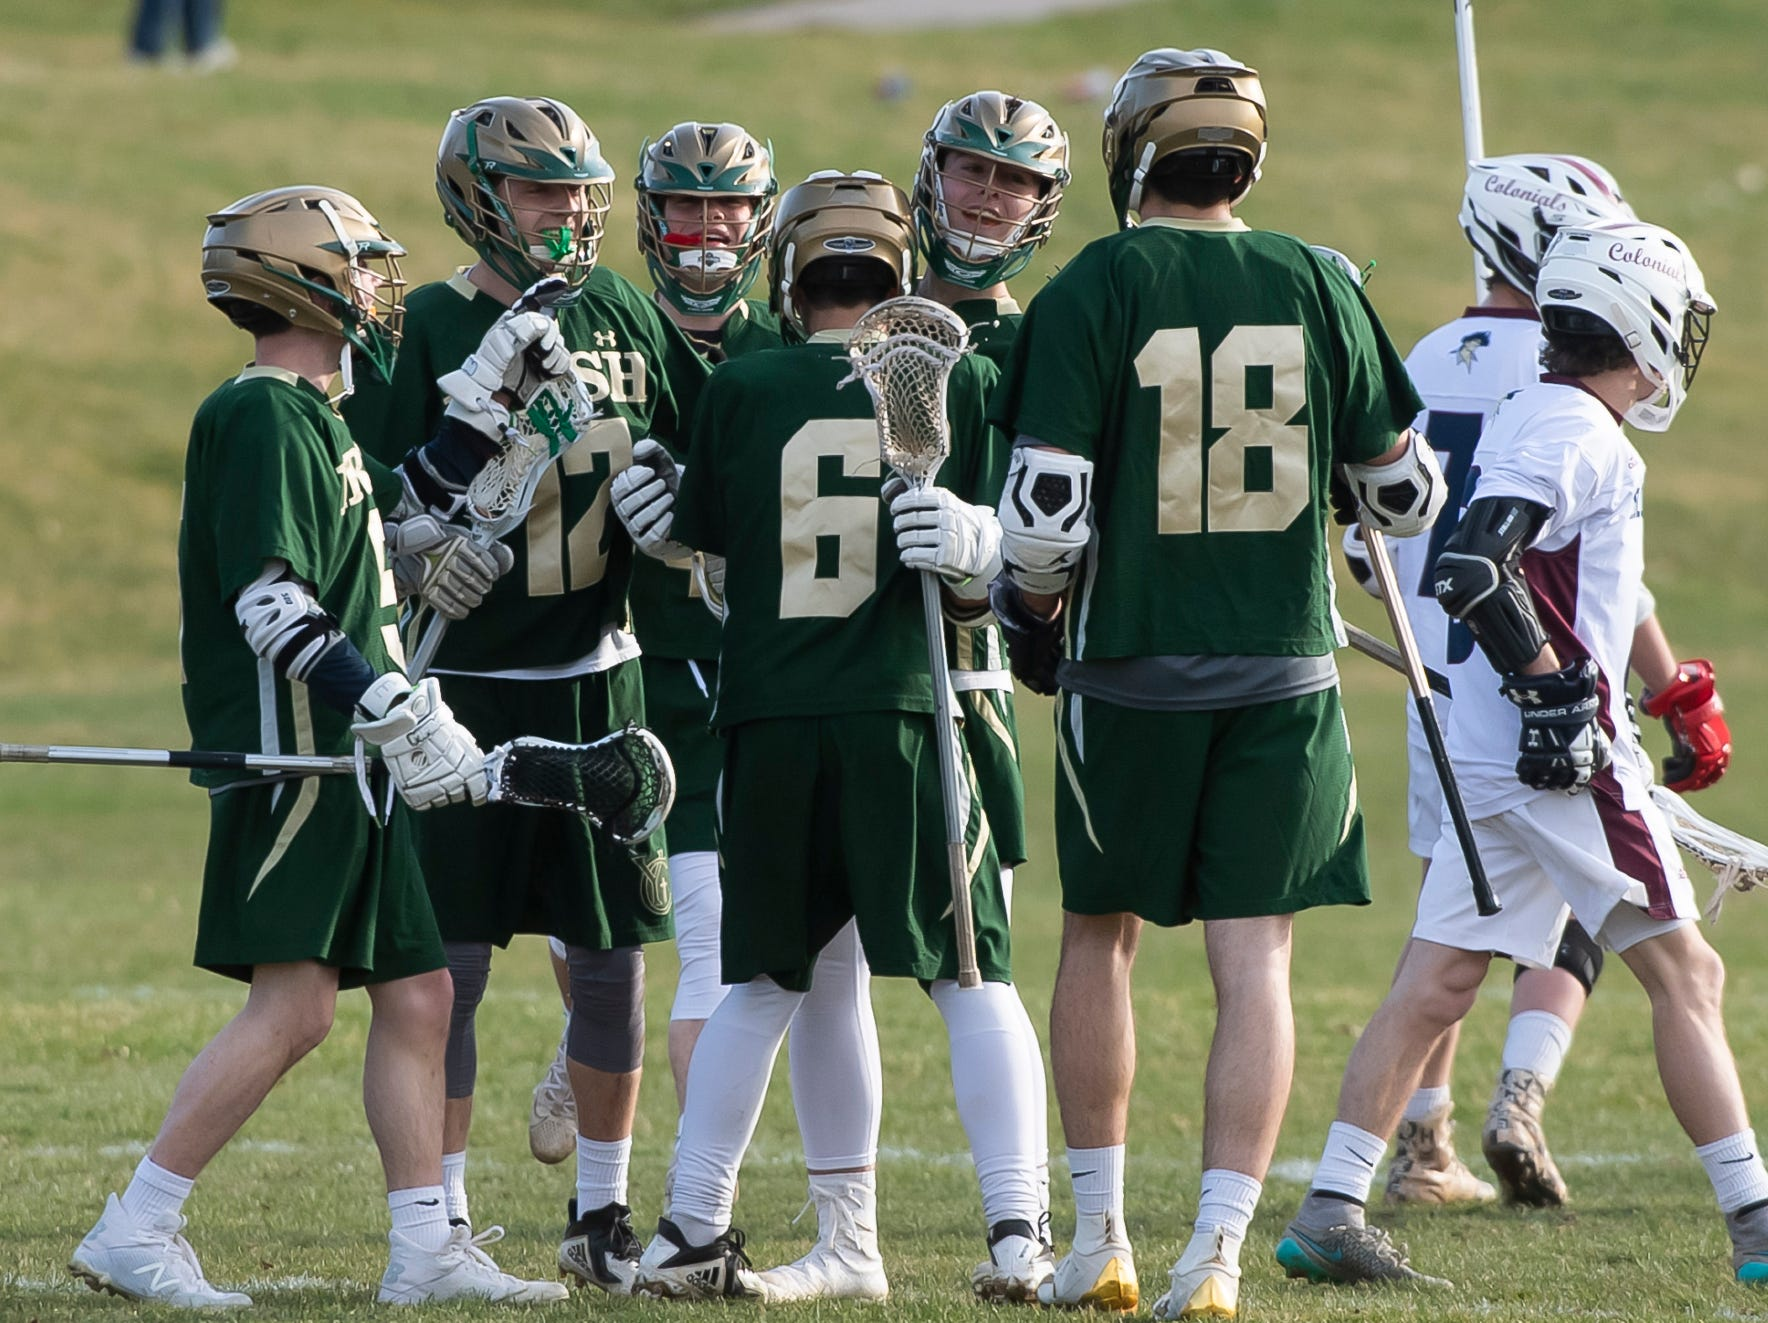 York Catholic players celebrate after Chandler Hake scored a goal during a YAIAA boys' lacrosse game against New Oxford on Thursday, April 4, 2019. Hake had four goals on nine shots and two assists as York Catholic won 14-8.